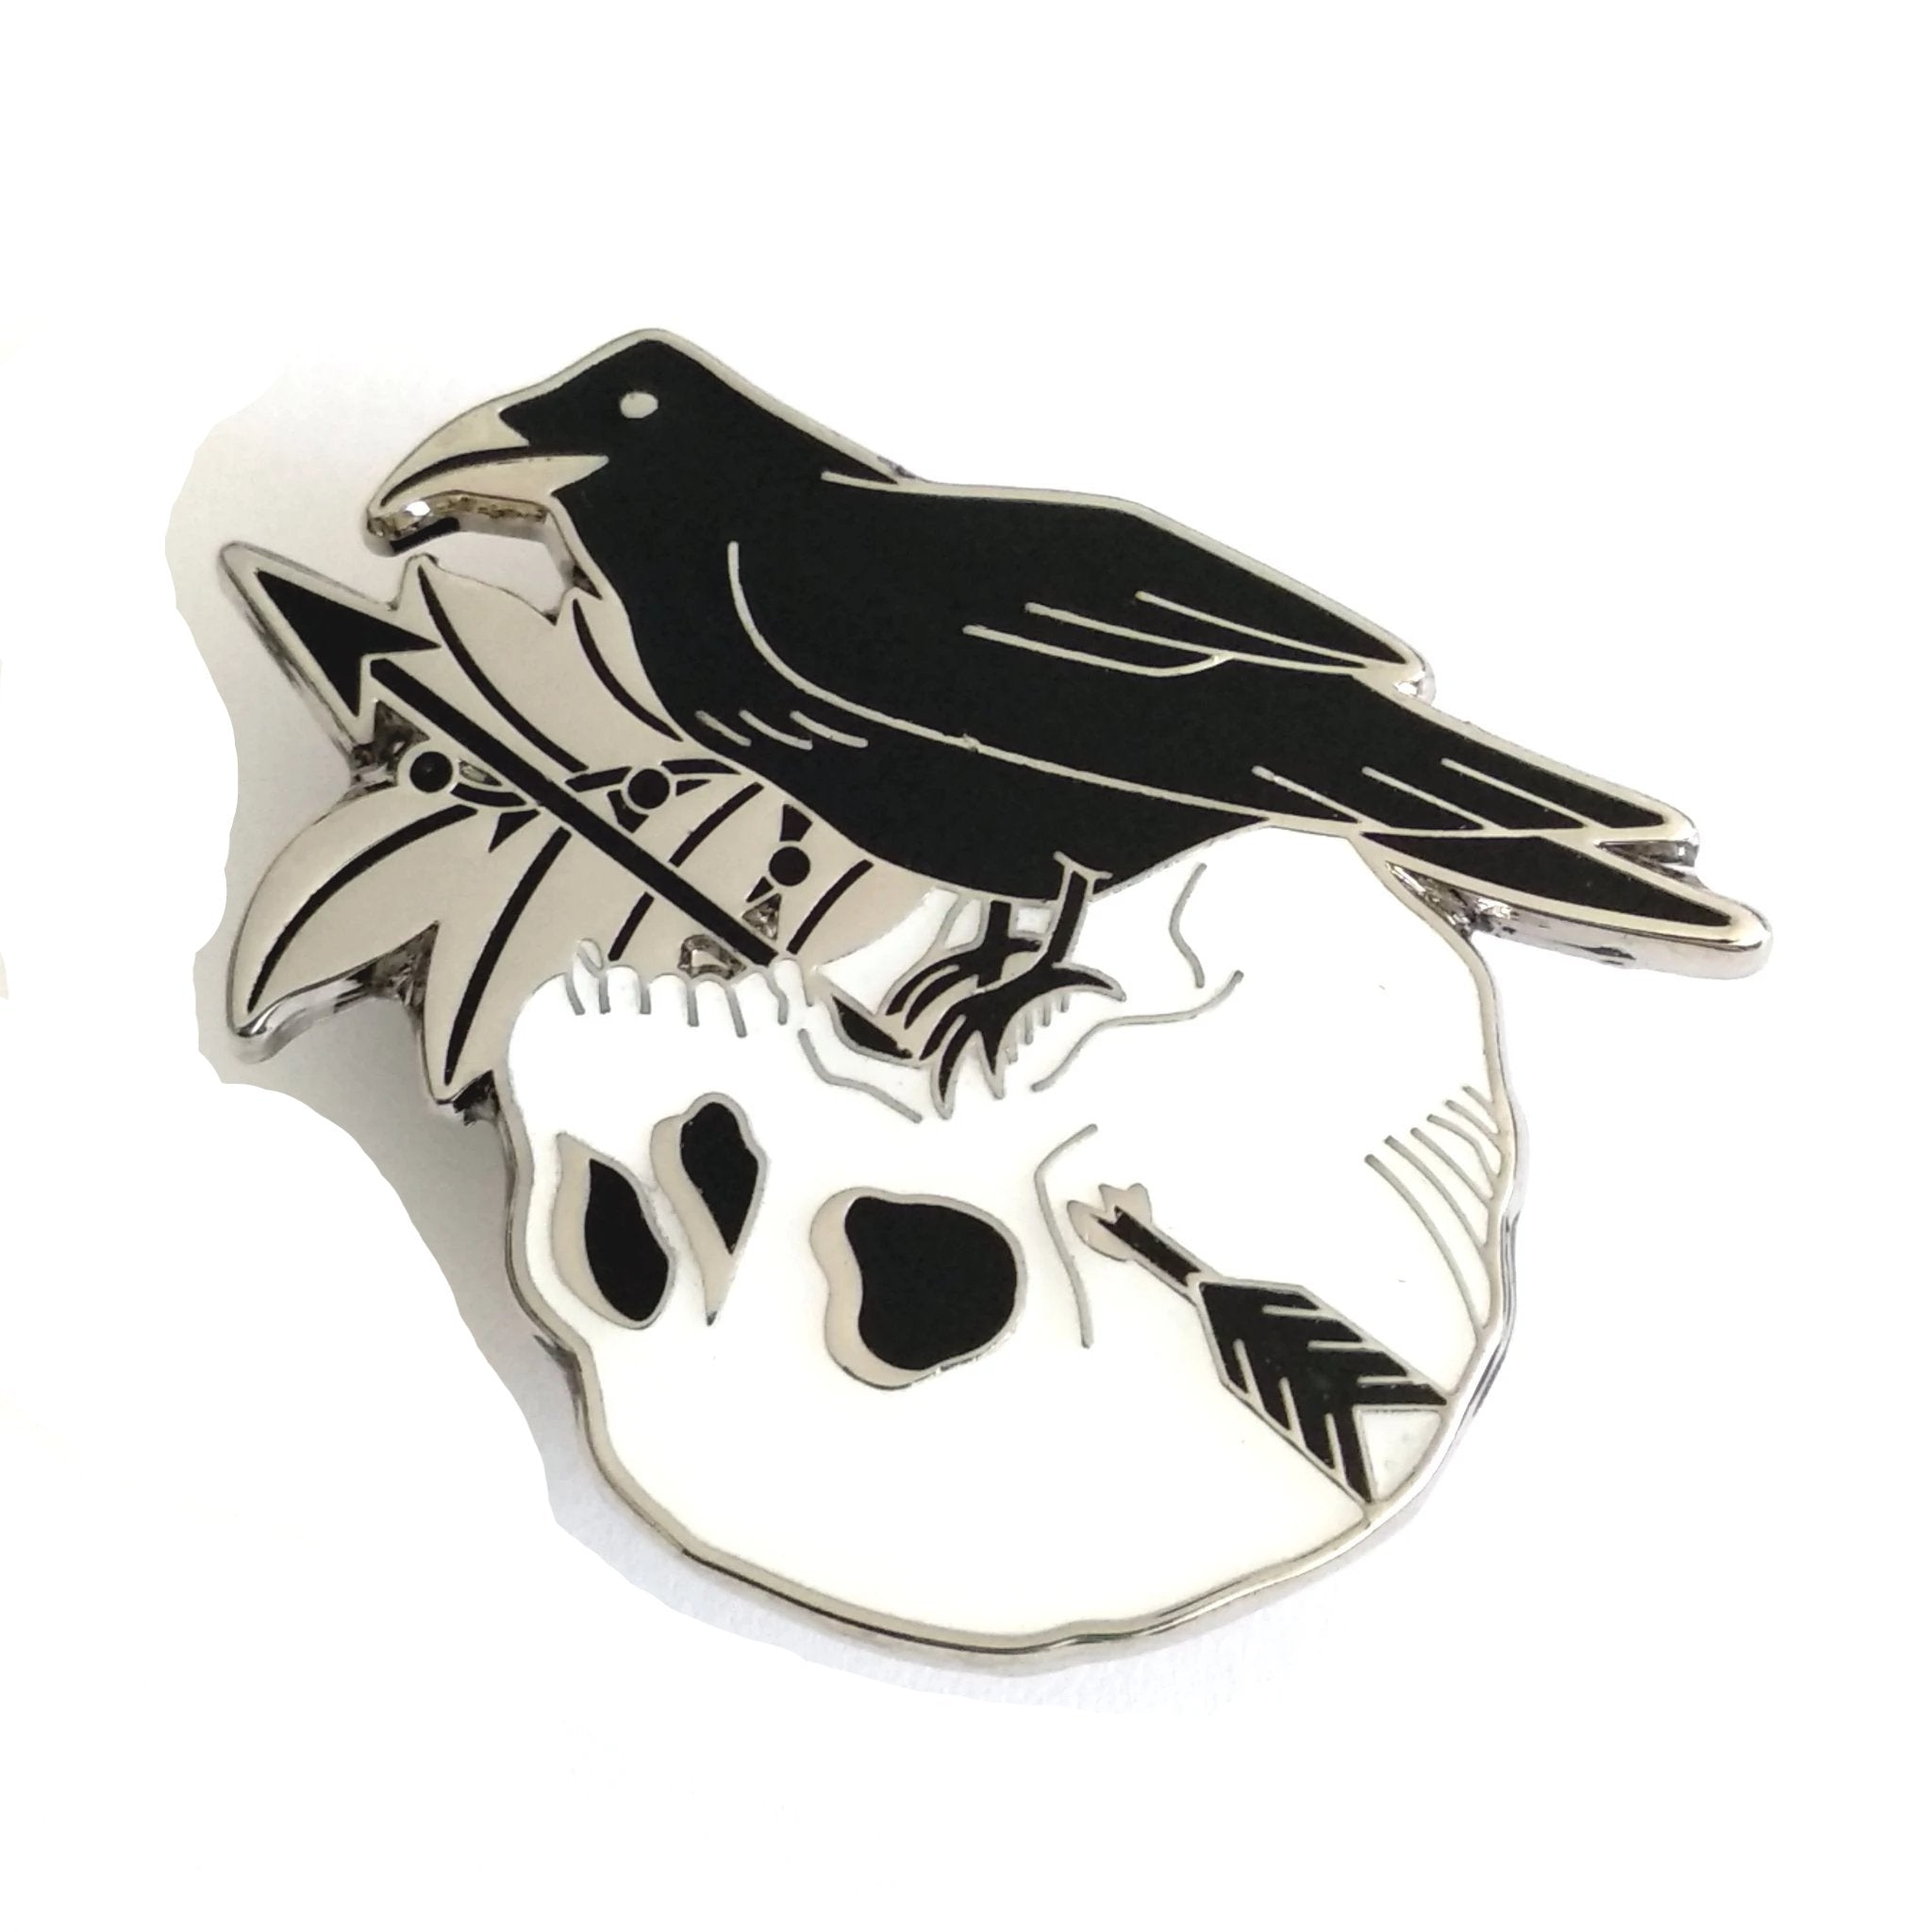 Apollo Raven & Skull Enamel Pin